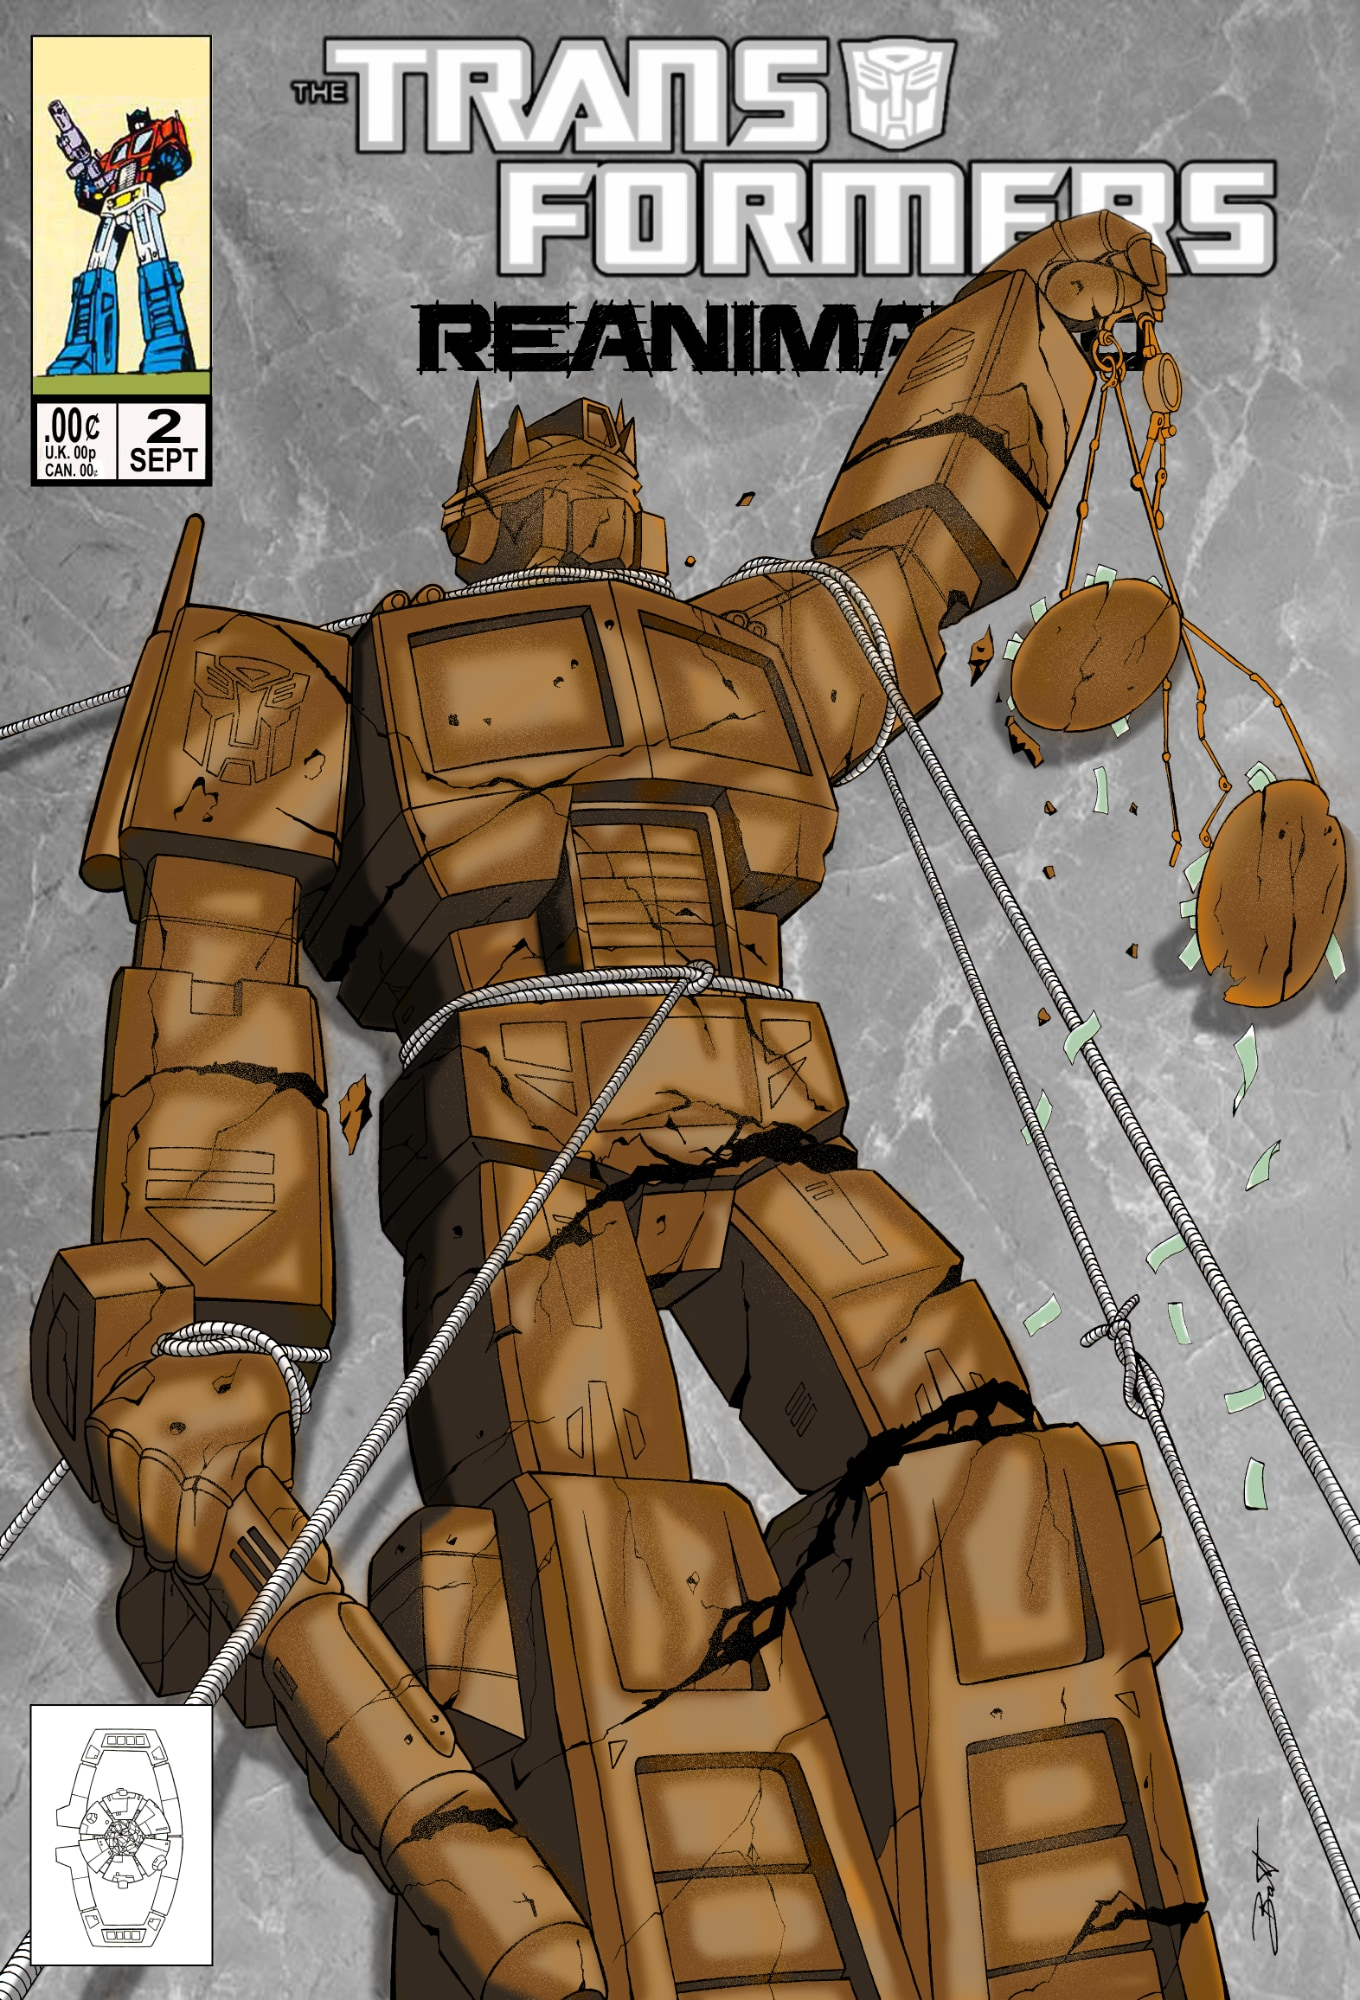 REANIMATED Issue 2: Autobots Under Arrest